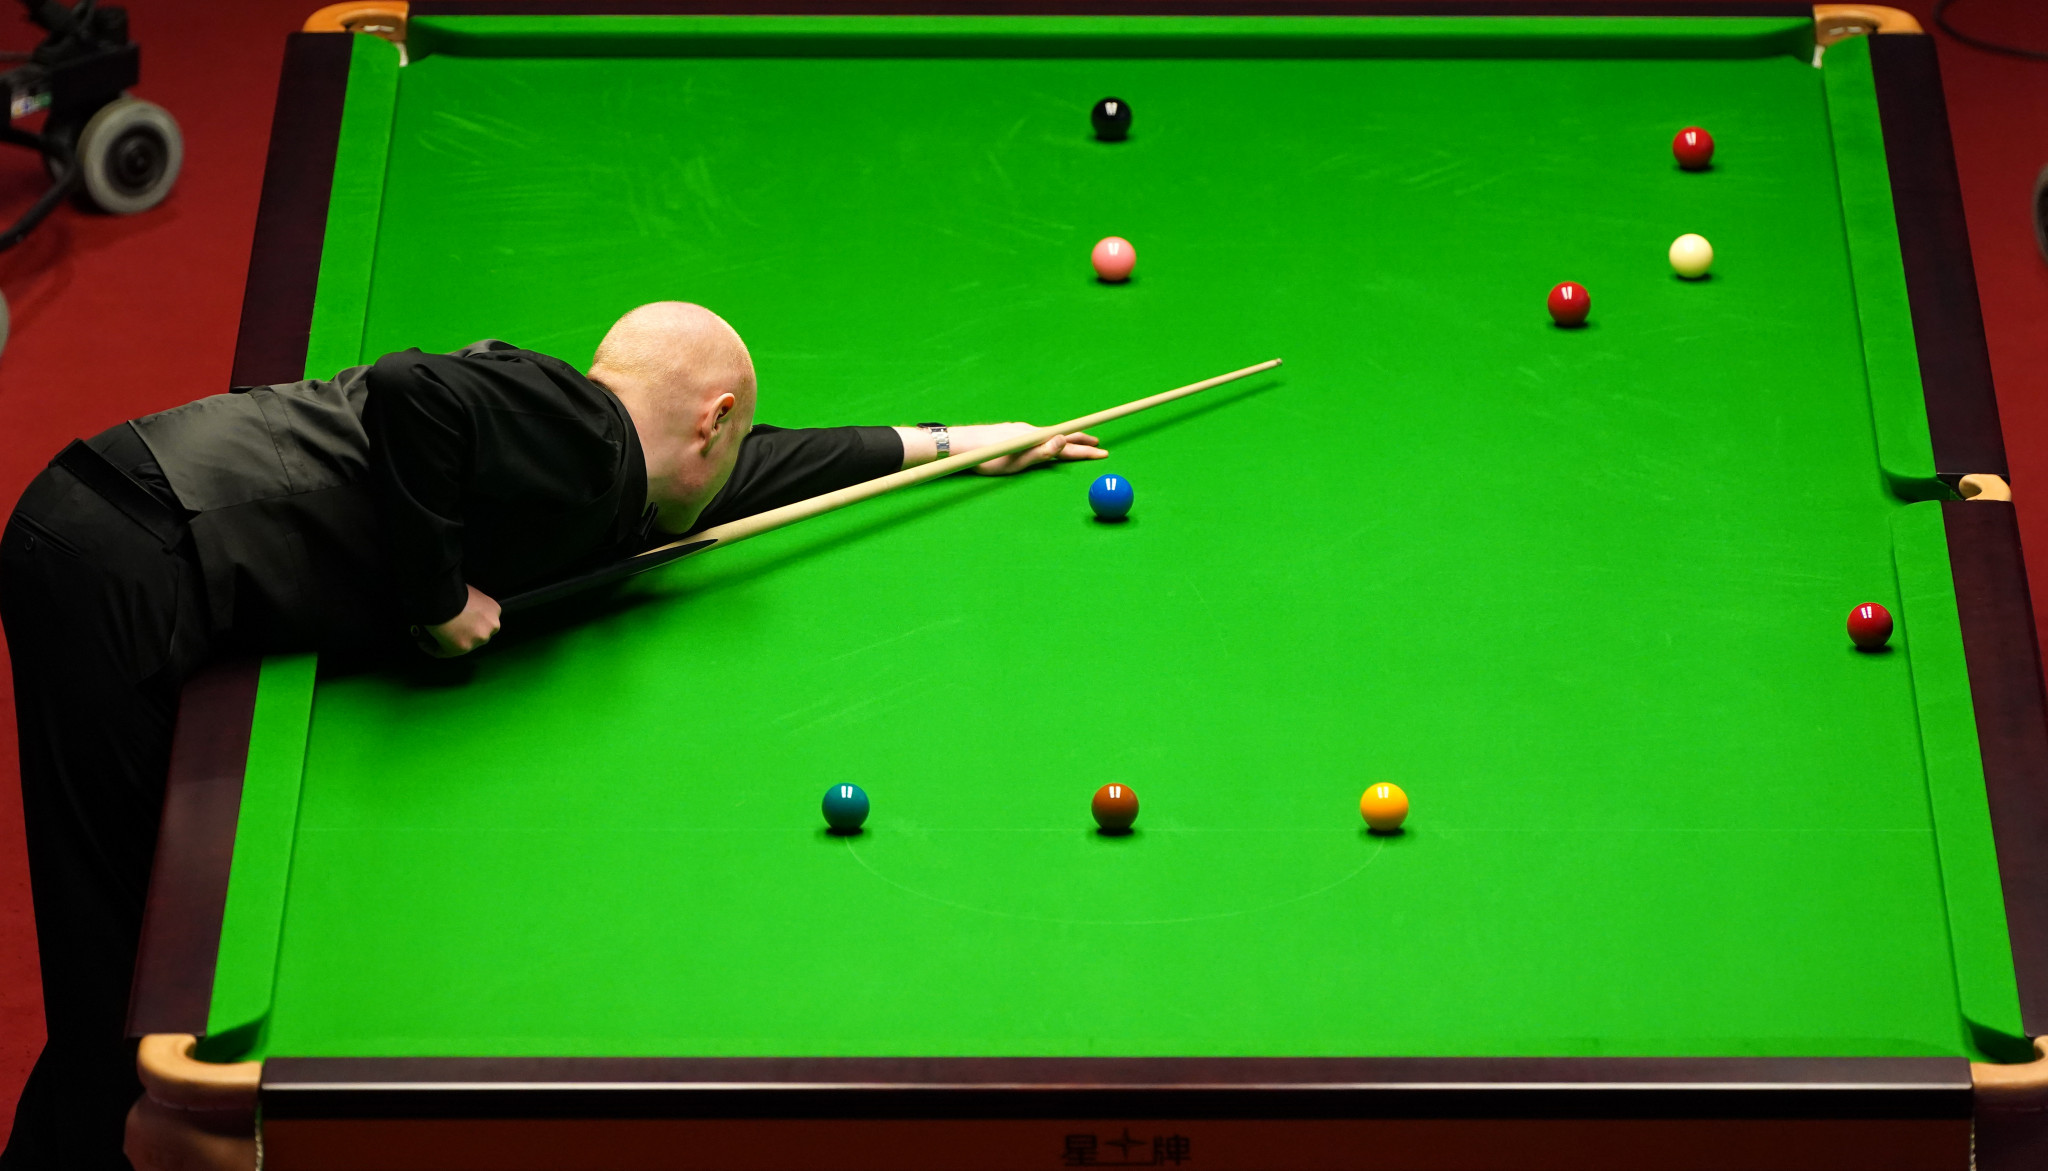 Selby and McGill ahead in World Snooker Championship quarter-finals